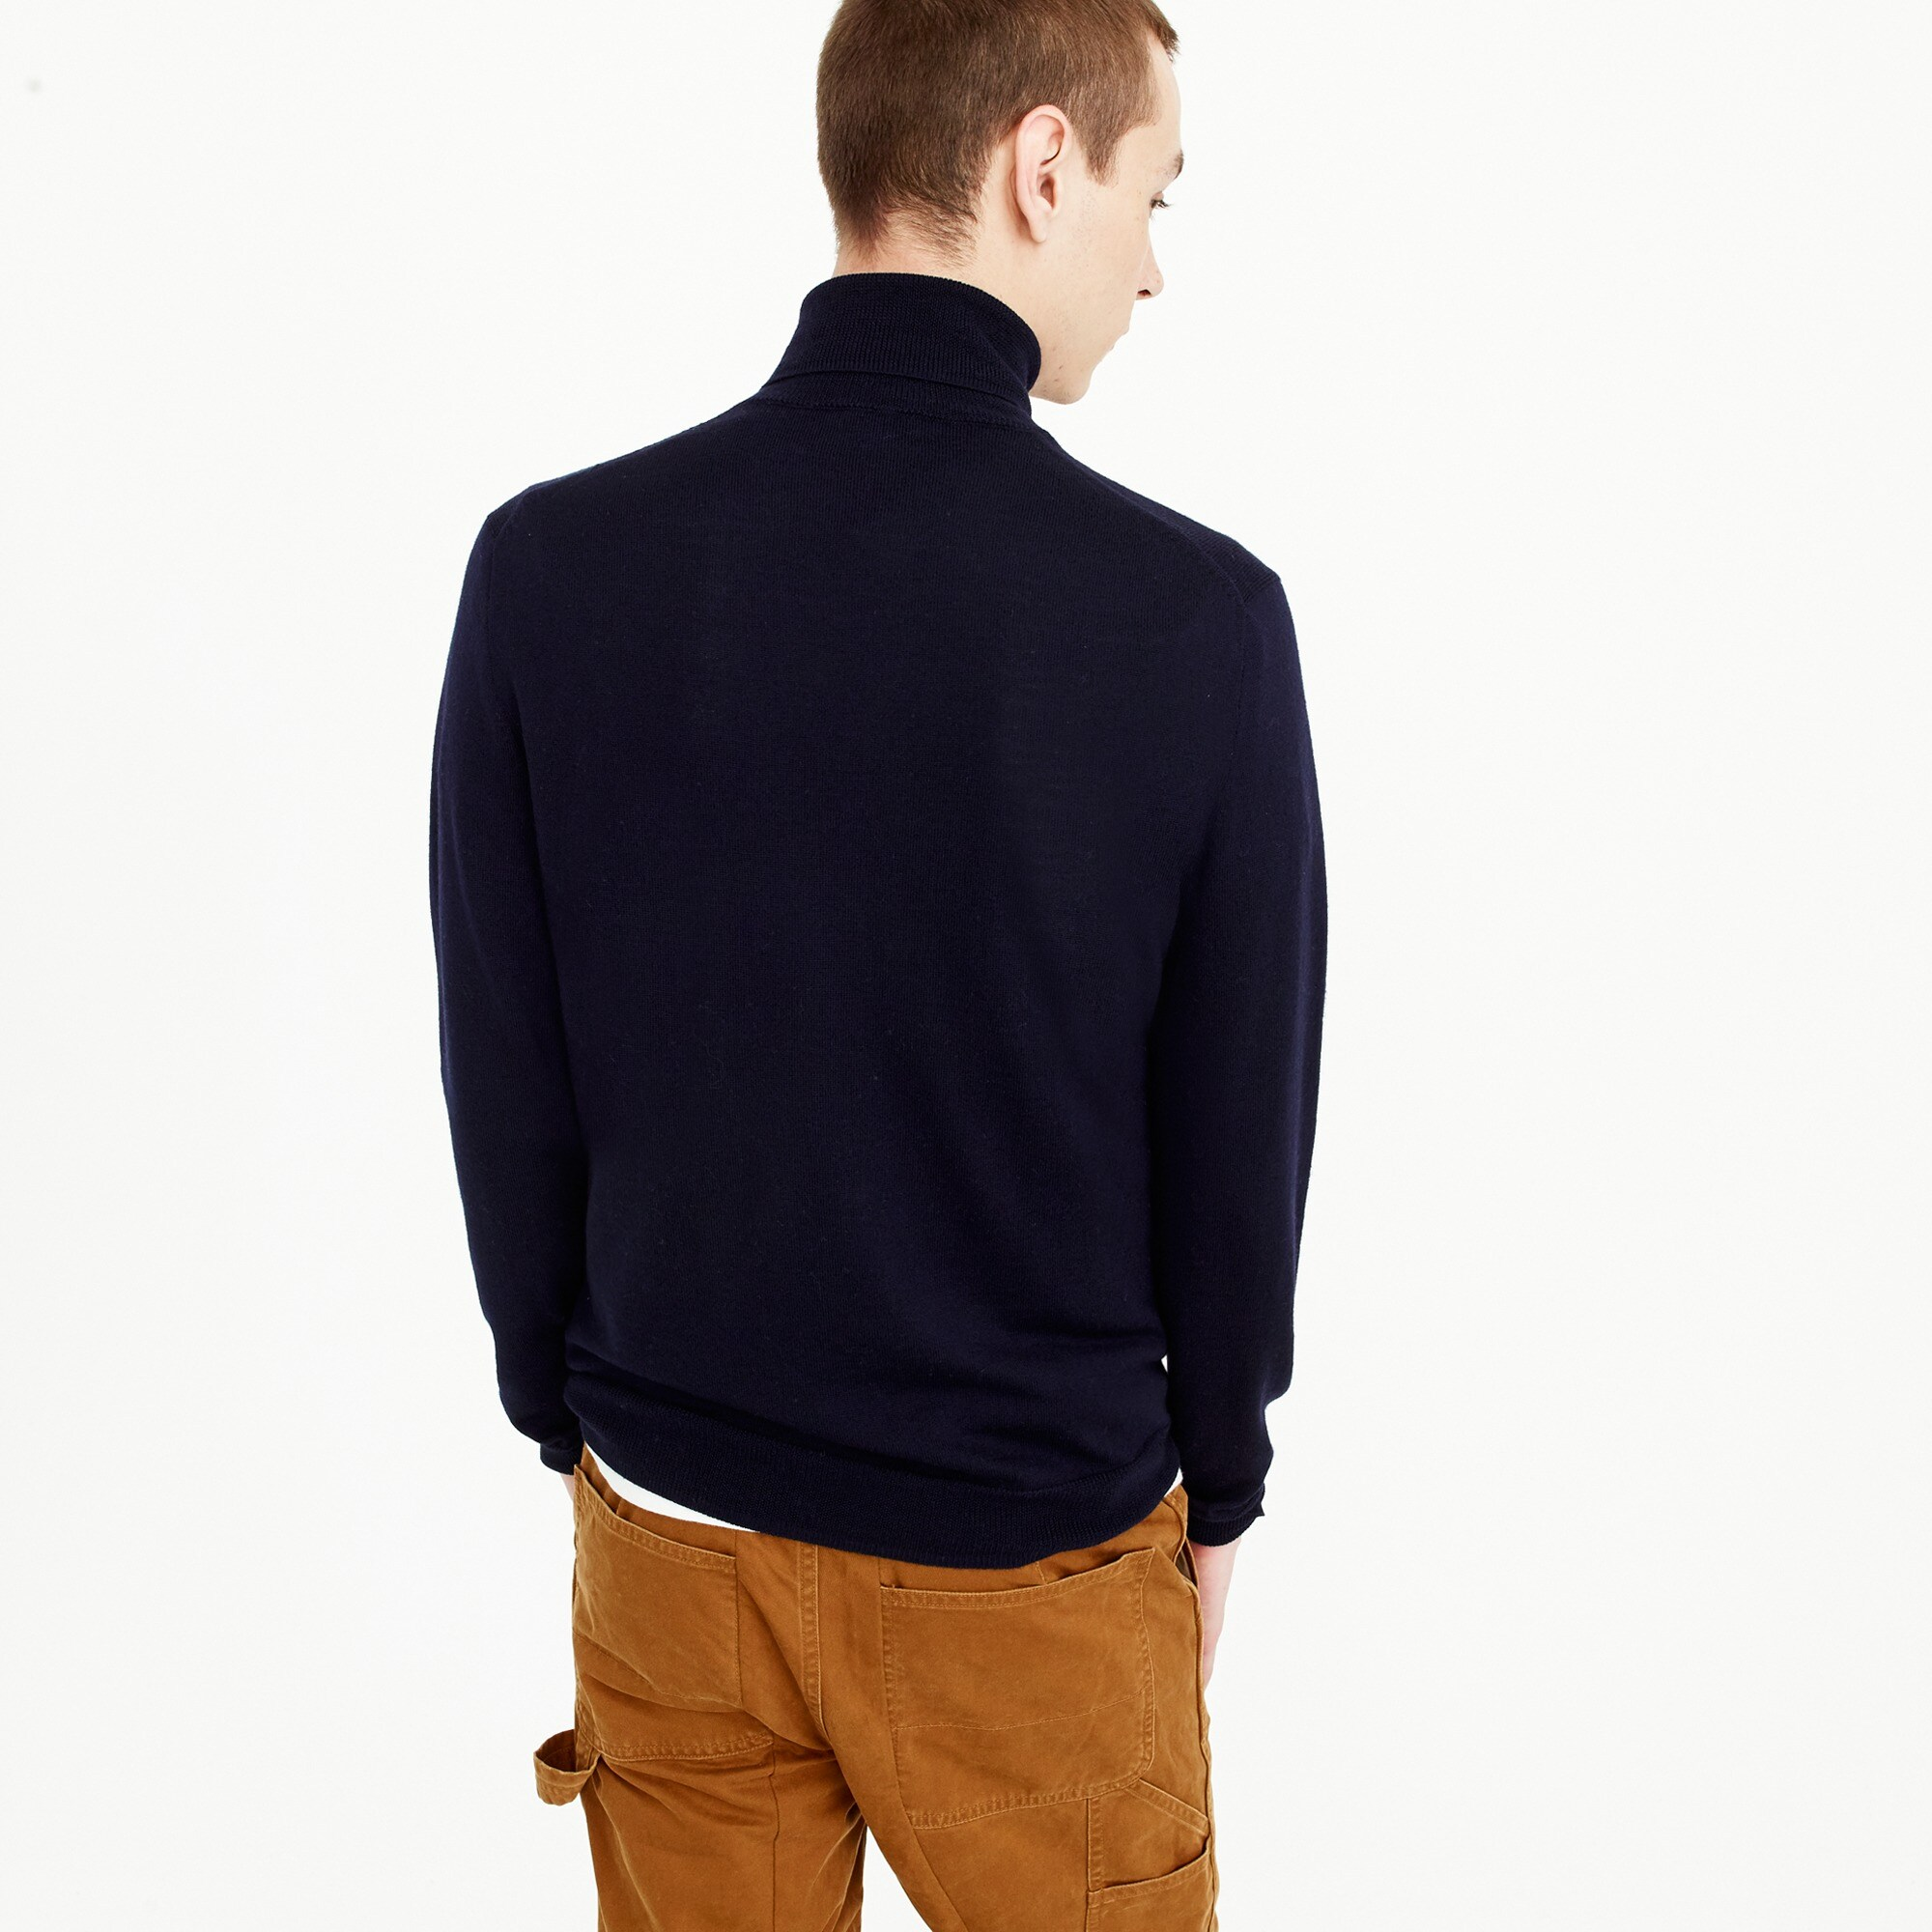 Italian merino wool turtleneck